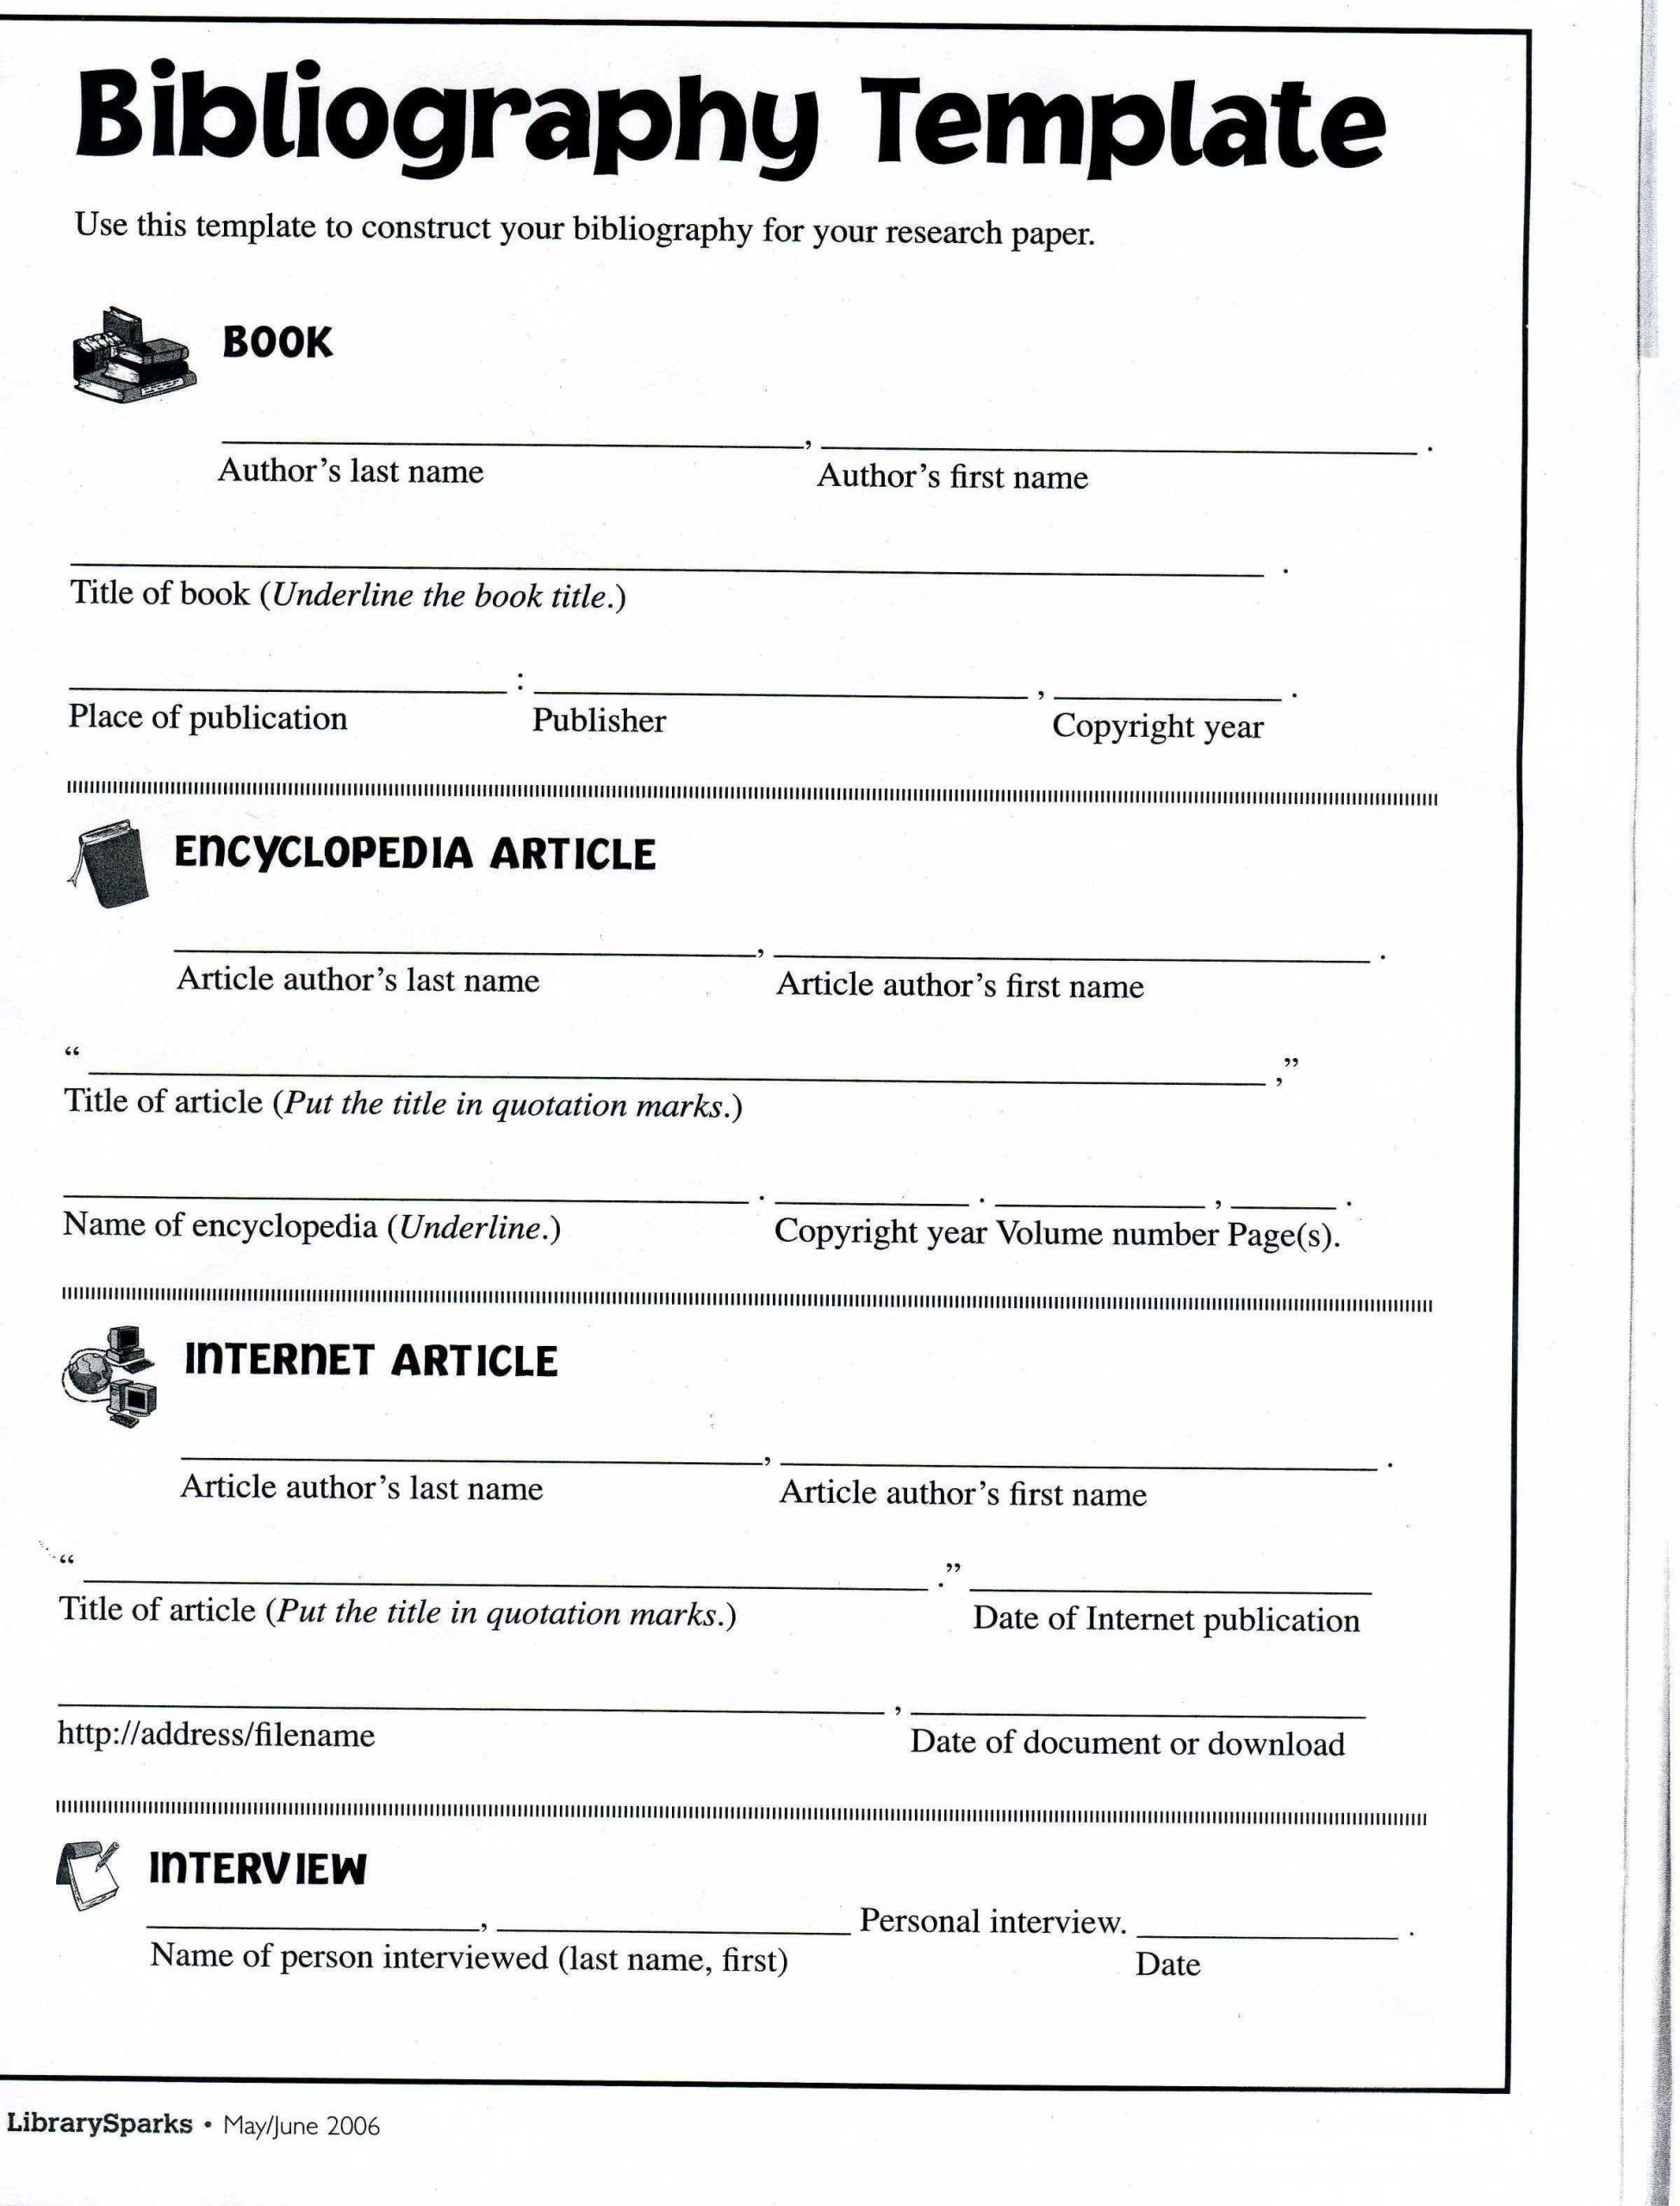 Citing sources Worksheet 5th Grade Image Result for Bibliography for 5th Grade